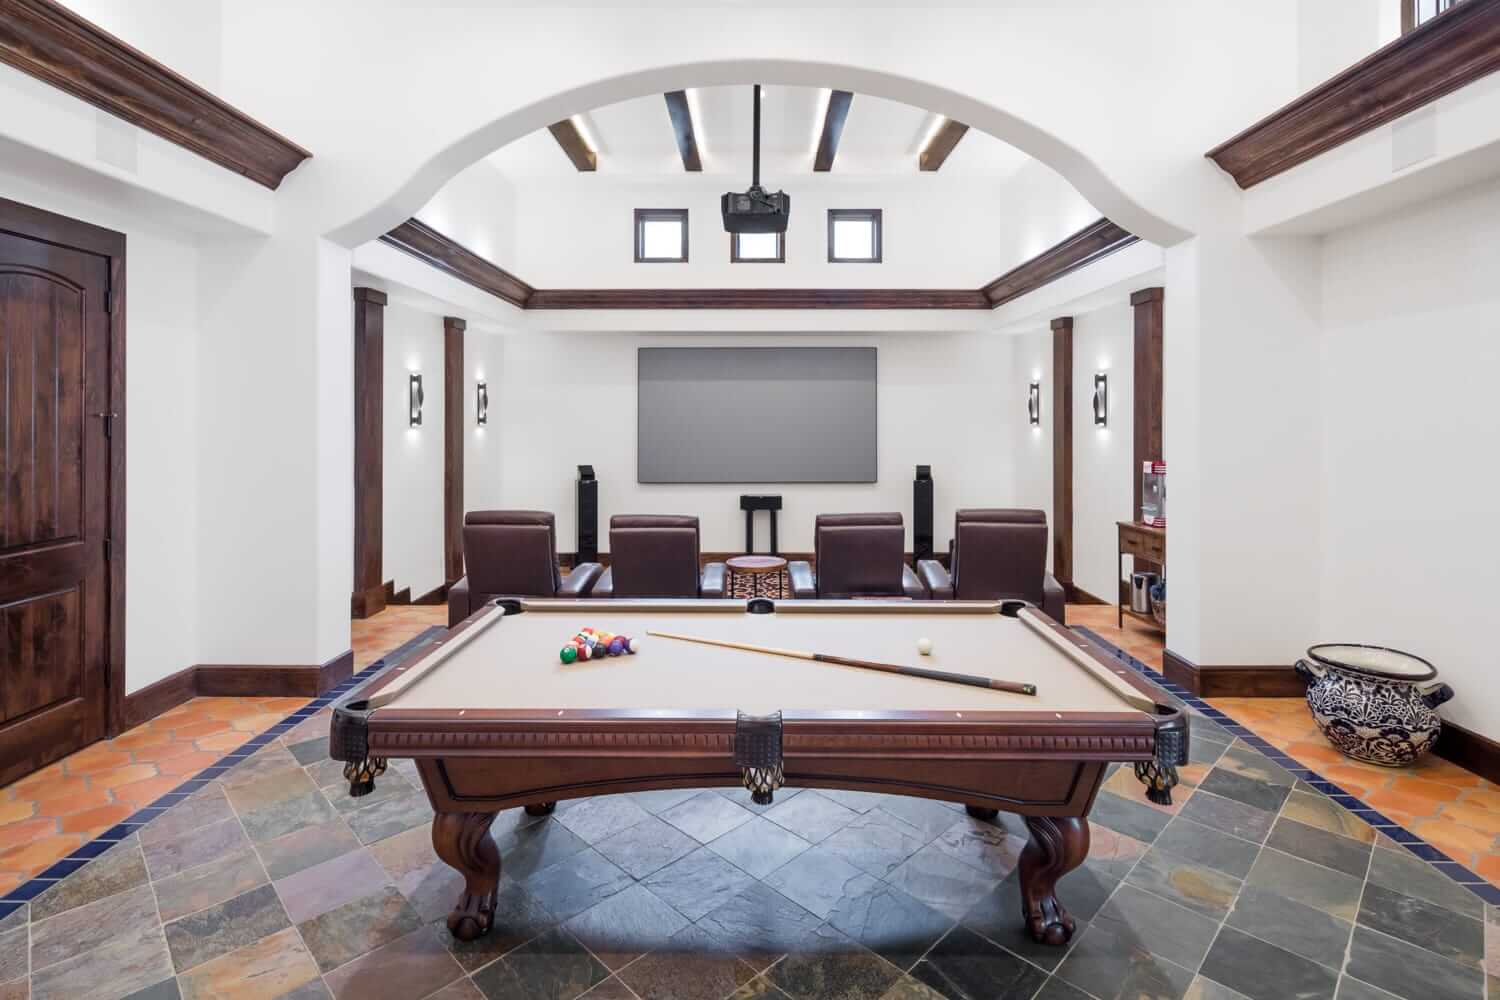 hugo rd - pool room